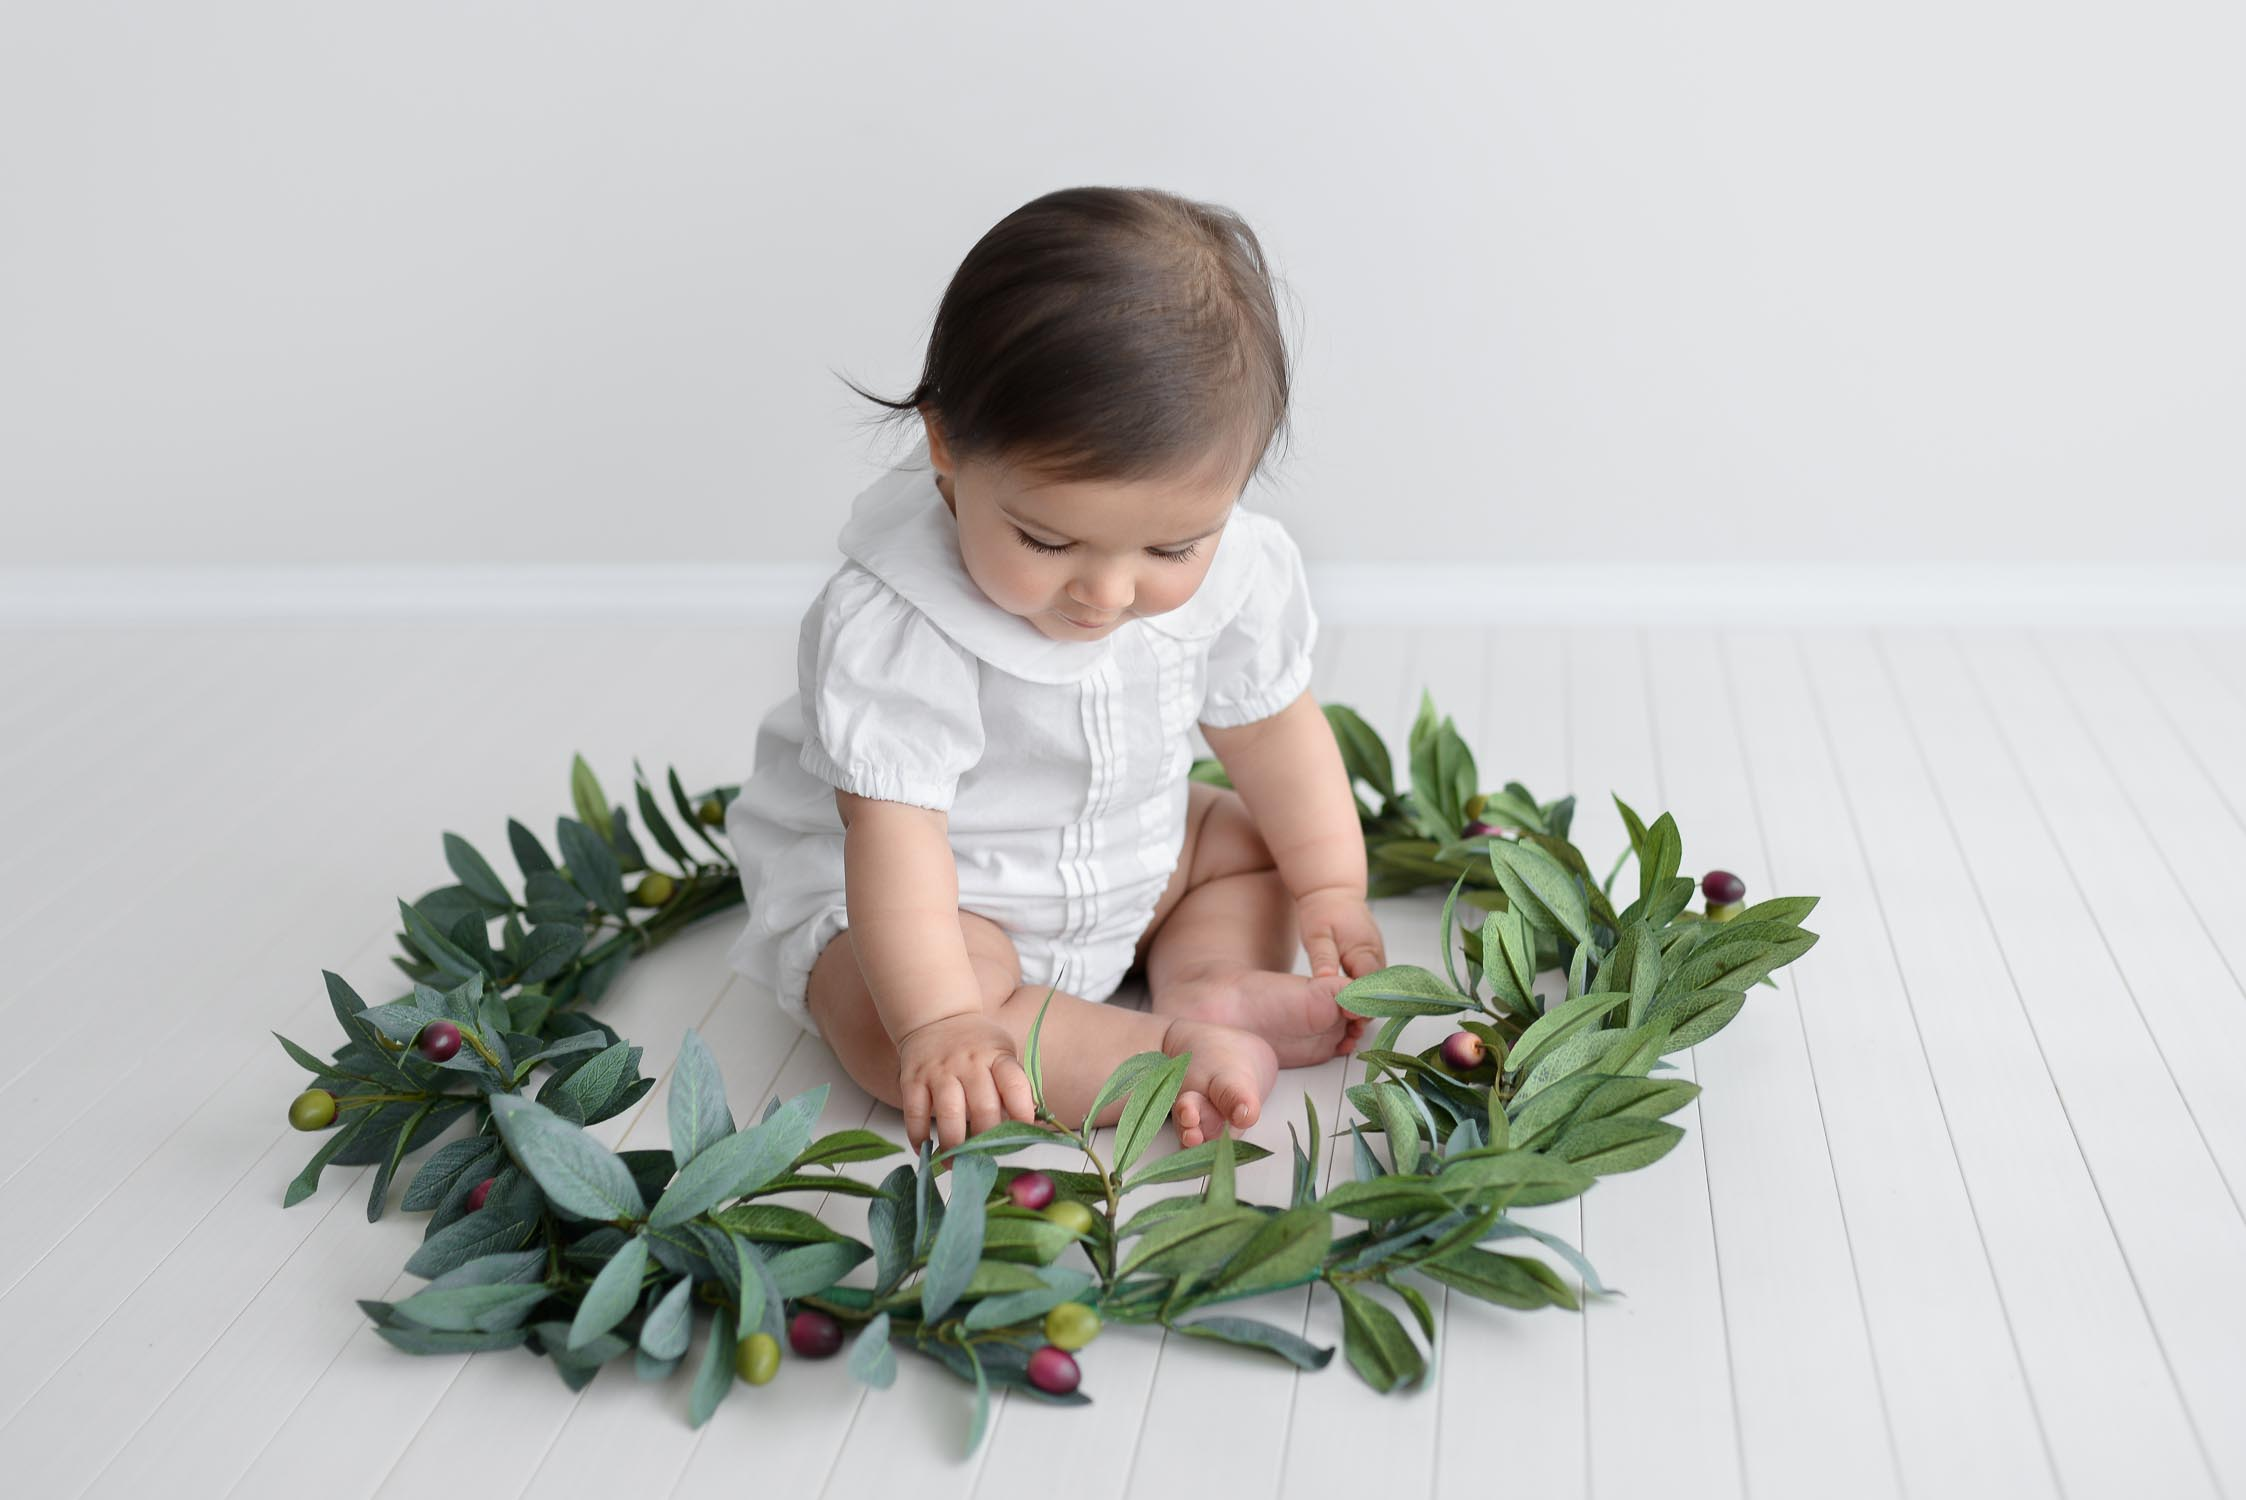 Baby sitting in christmas wreath in baby photography studio looking at wreath